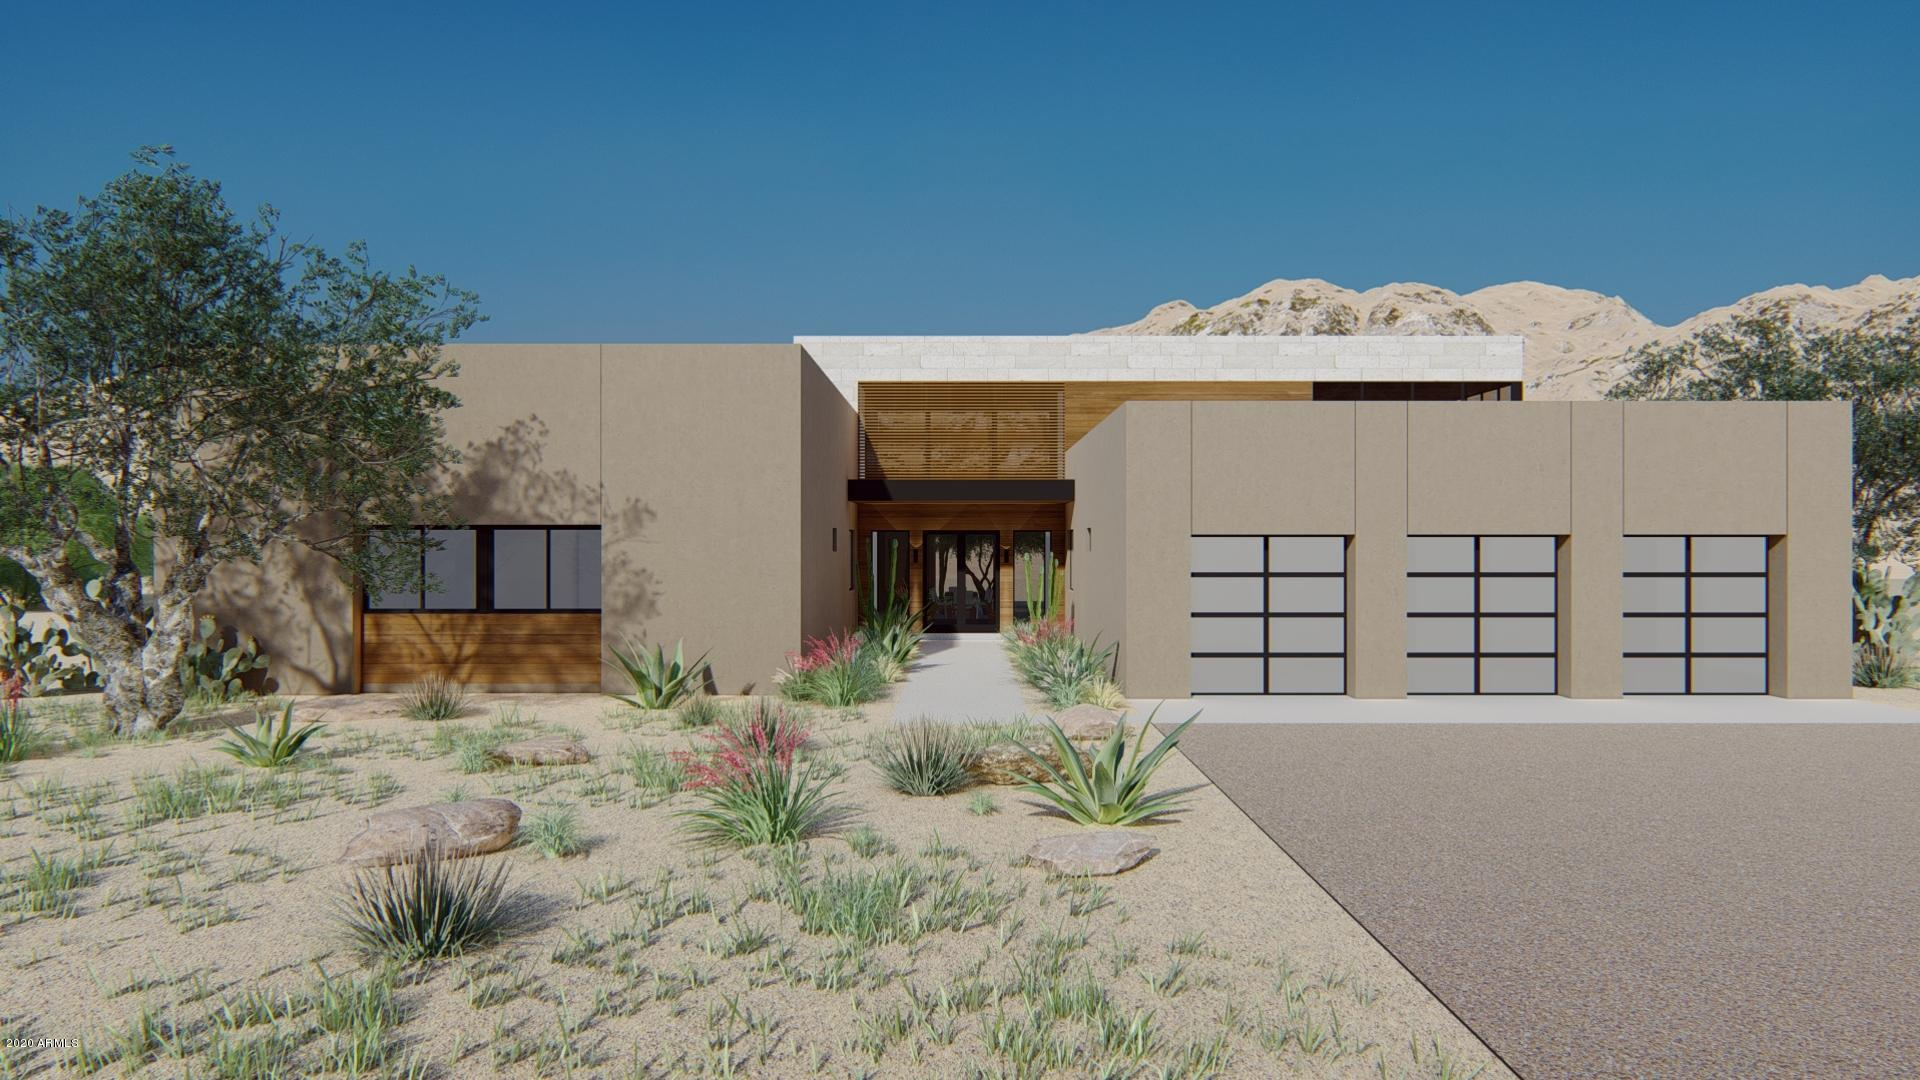 50% SOLD OUT! Only 3 lots remain! New, Modern, Luxury - Lomas Verdes Estates is a gated enclave of 6 homes designed by the award winning architecture firm the Ranch Mine and constructed by the uber talented JP Kush Construction.